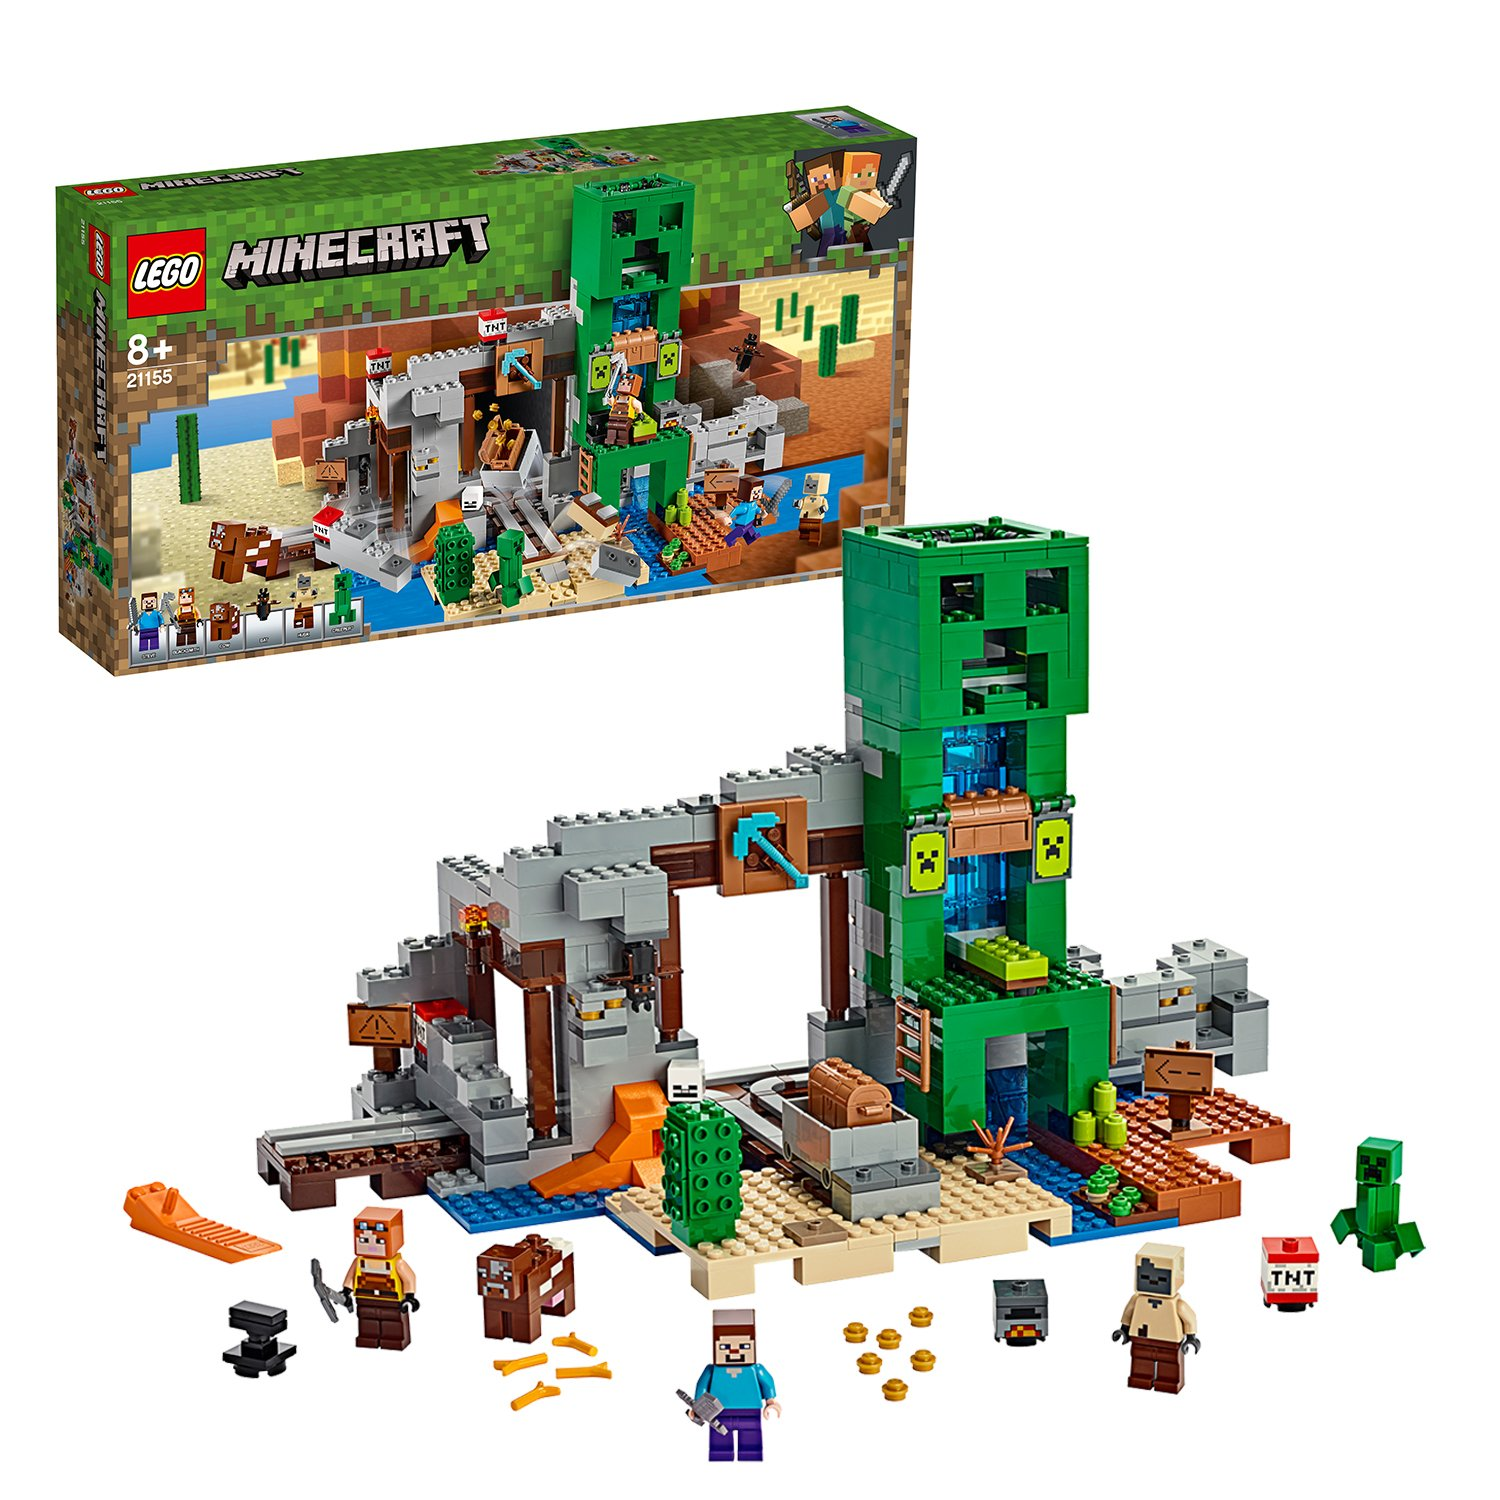 LEGO Minecraft The Creeper Mine Playset - 21155